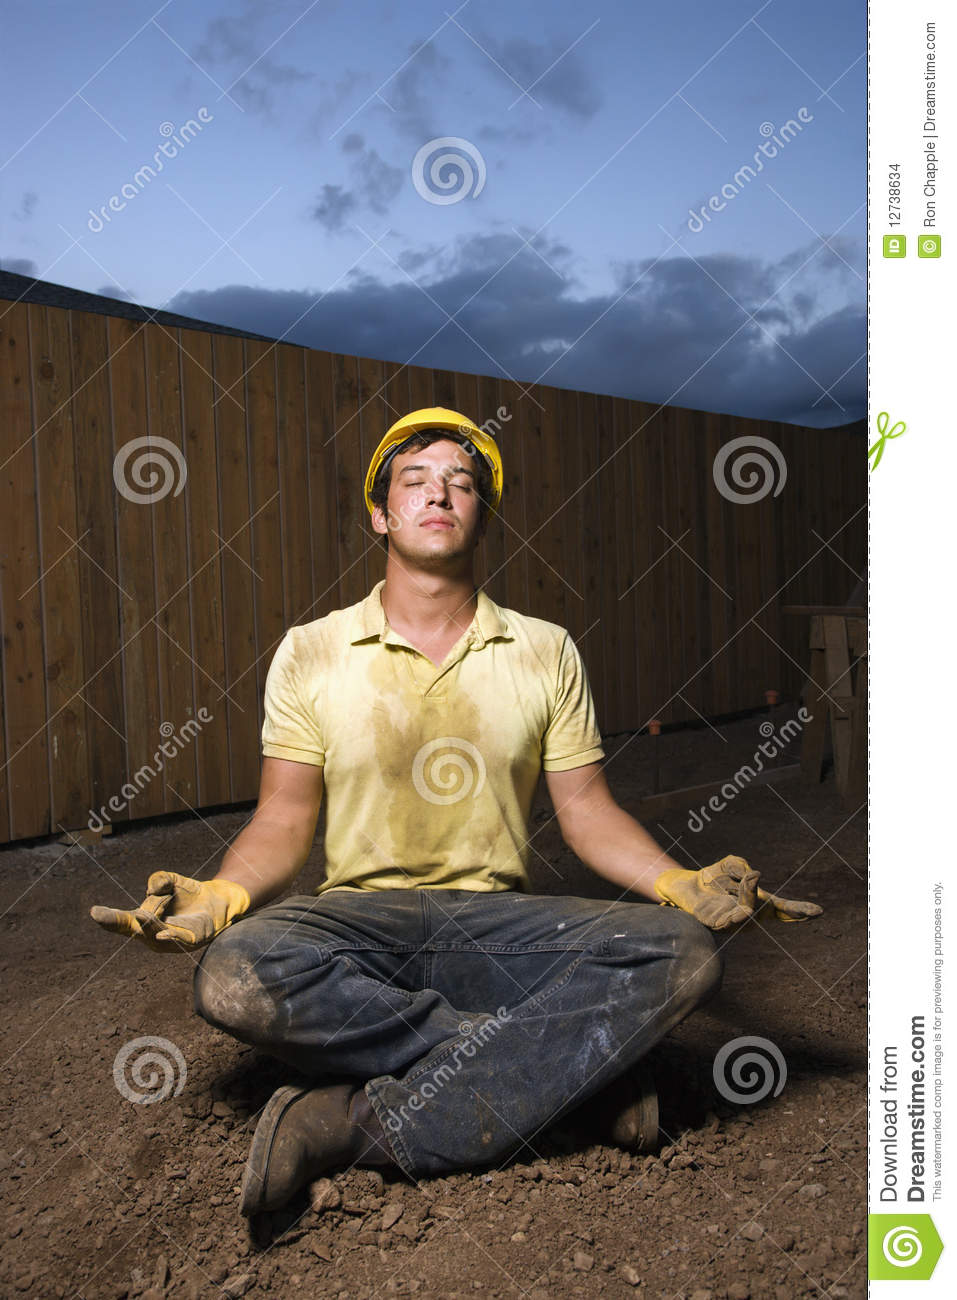 Meditating Construction Worker Stock Images Image 12738634